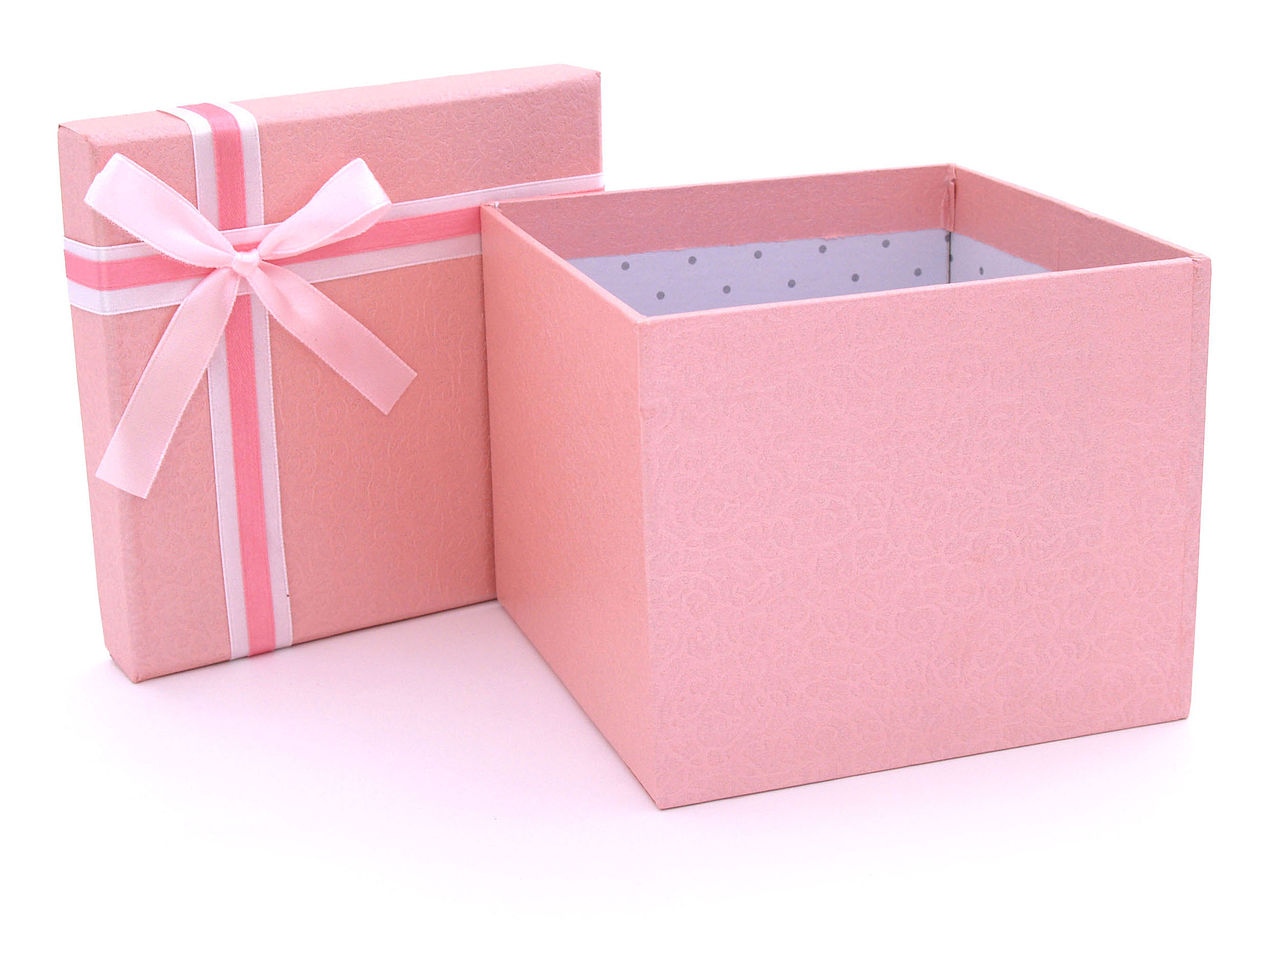 file open pink gifft box with white ribbon jpg wikimedia commons. Black Bedroom Furniture Sets. Home Design Ideas